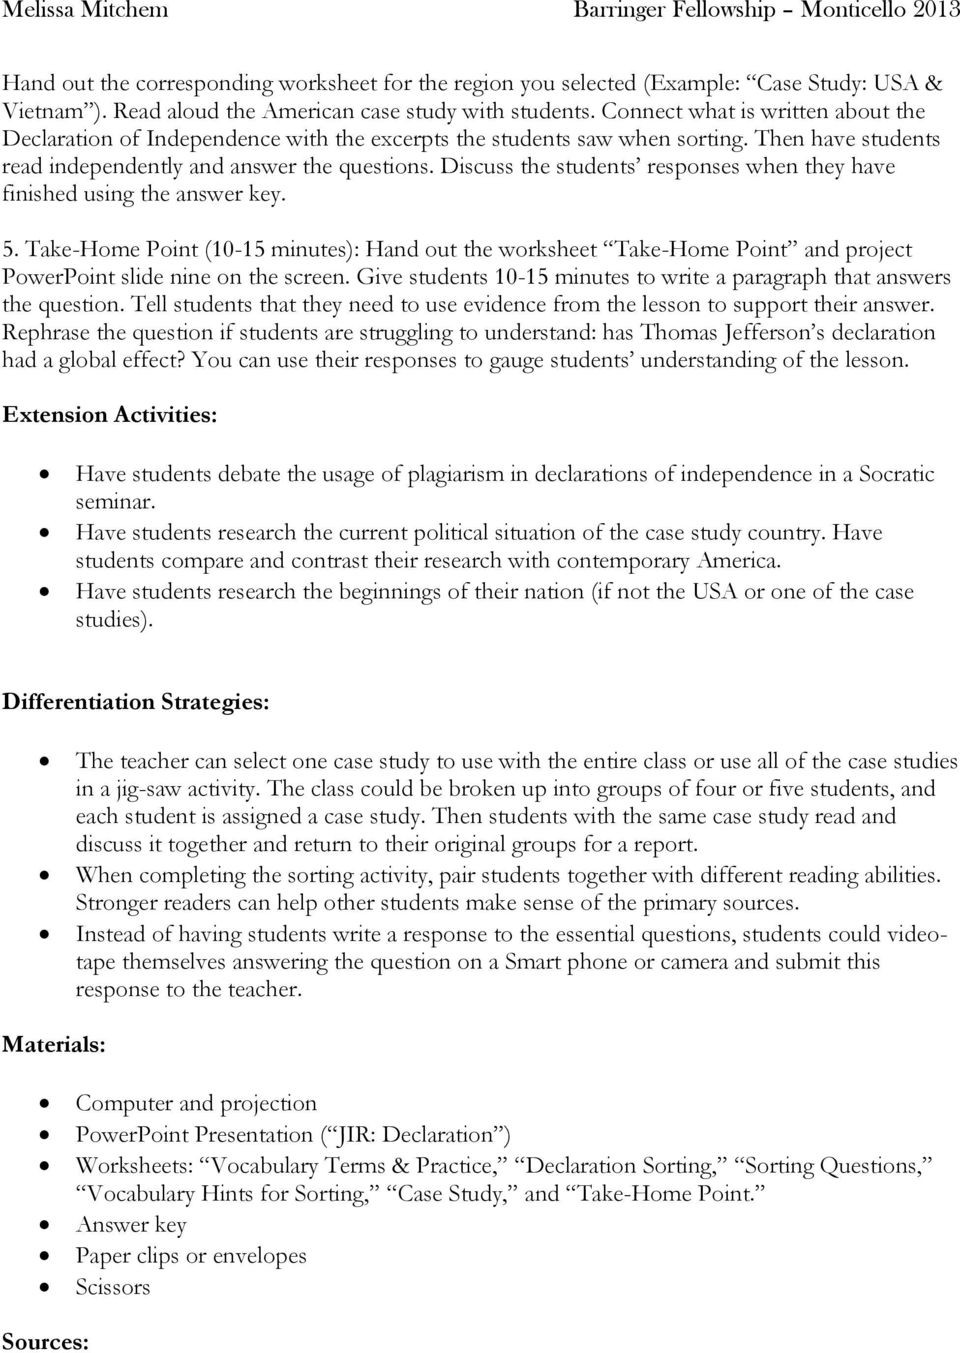 Declaration Of Independence Worksheet Answers Understanding the Declaration Independence Worksheet